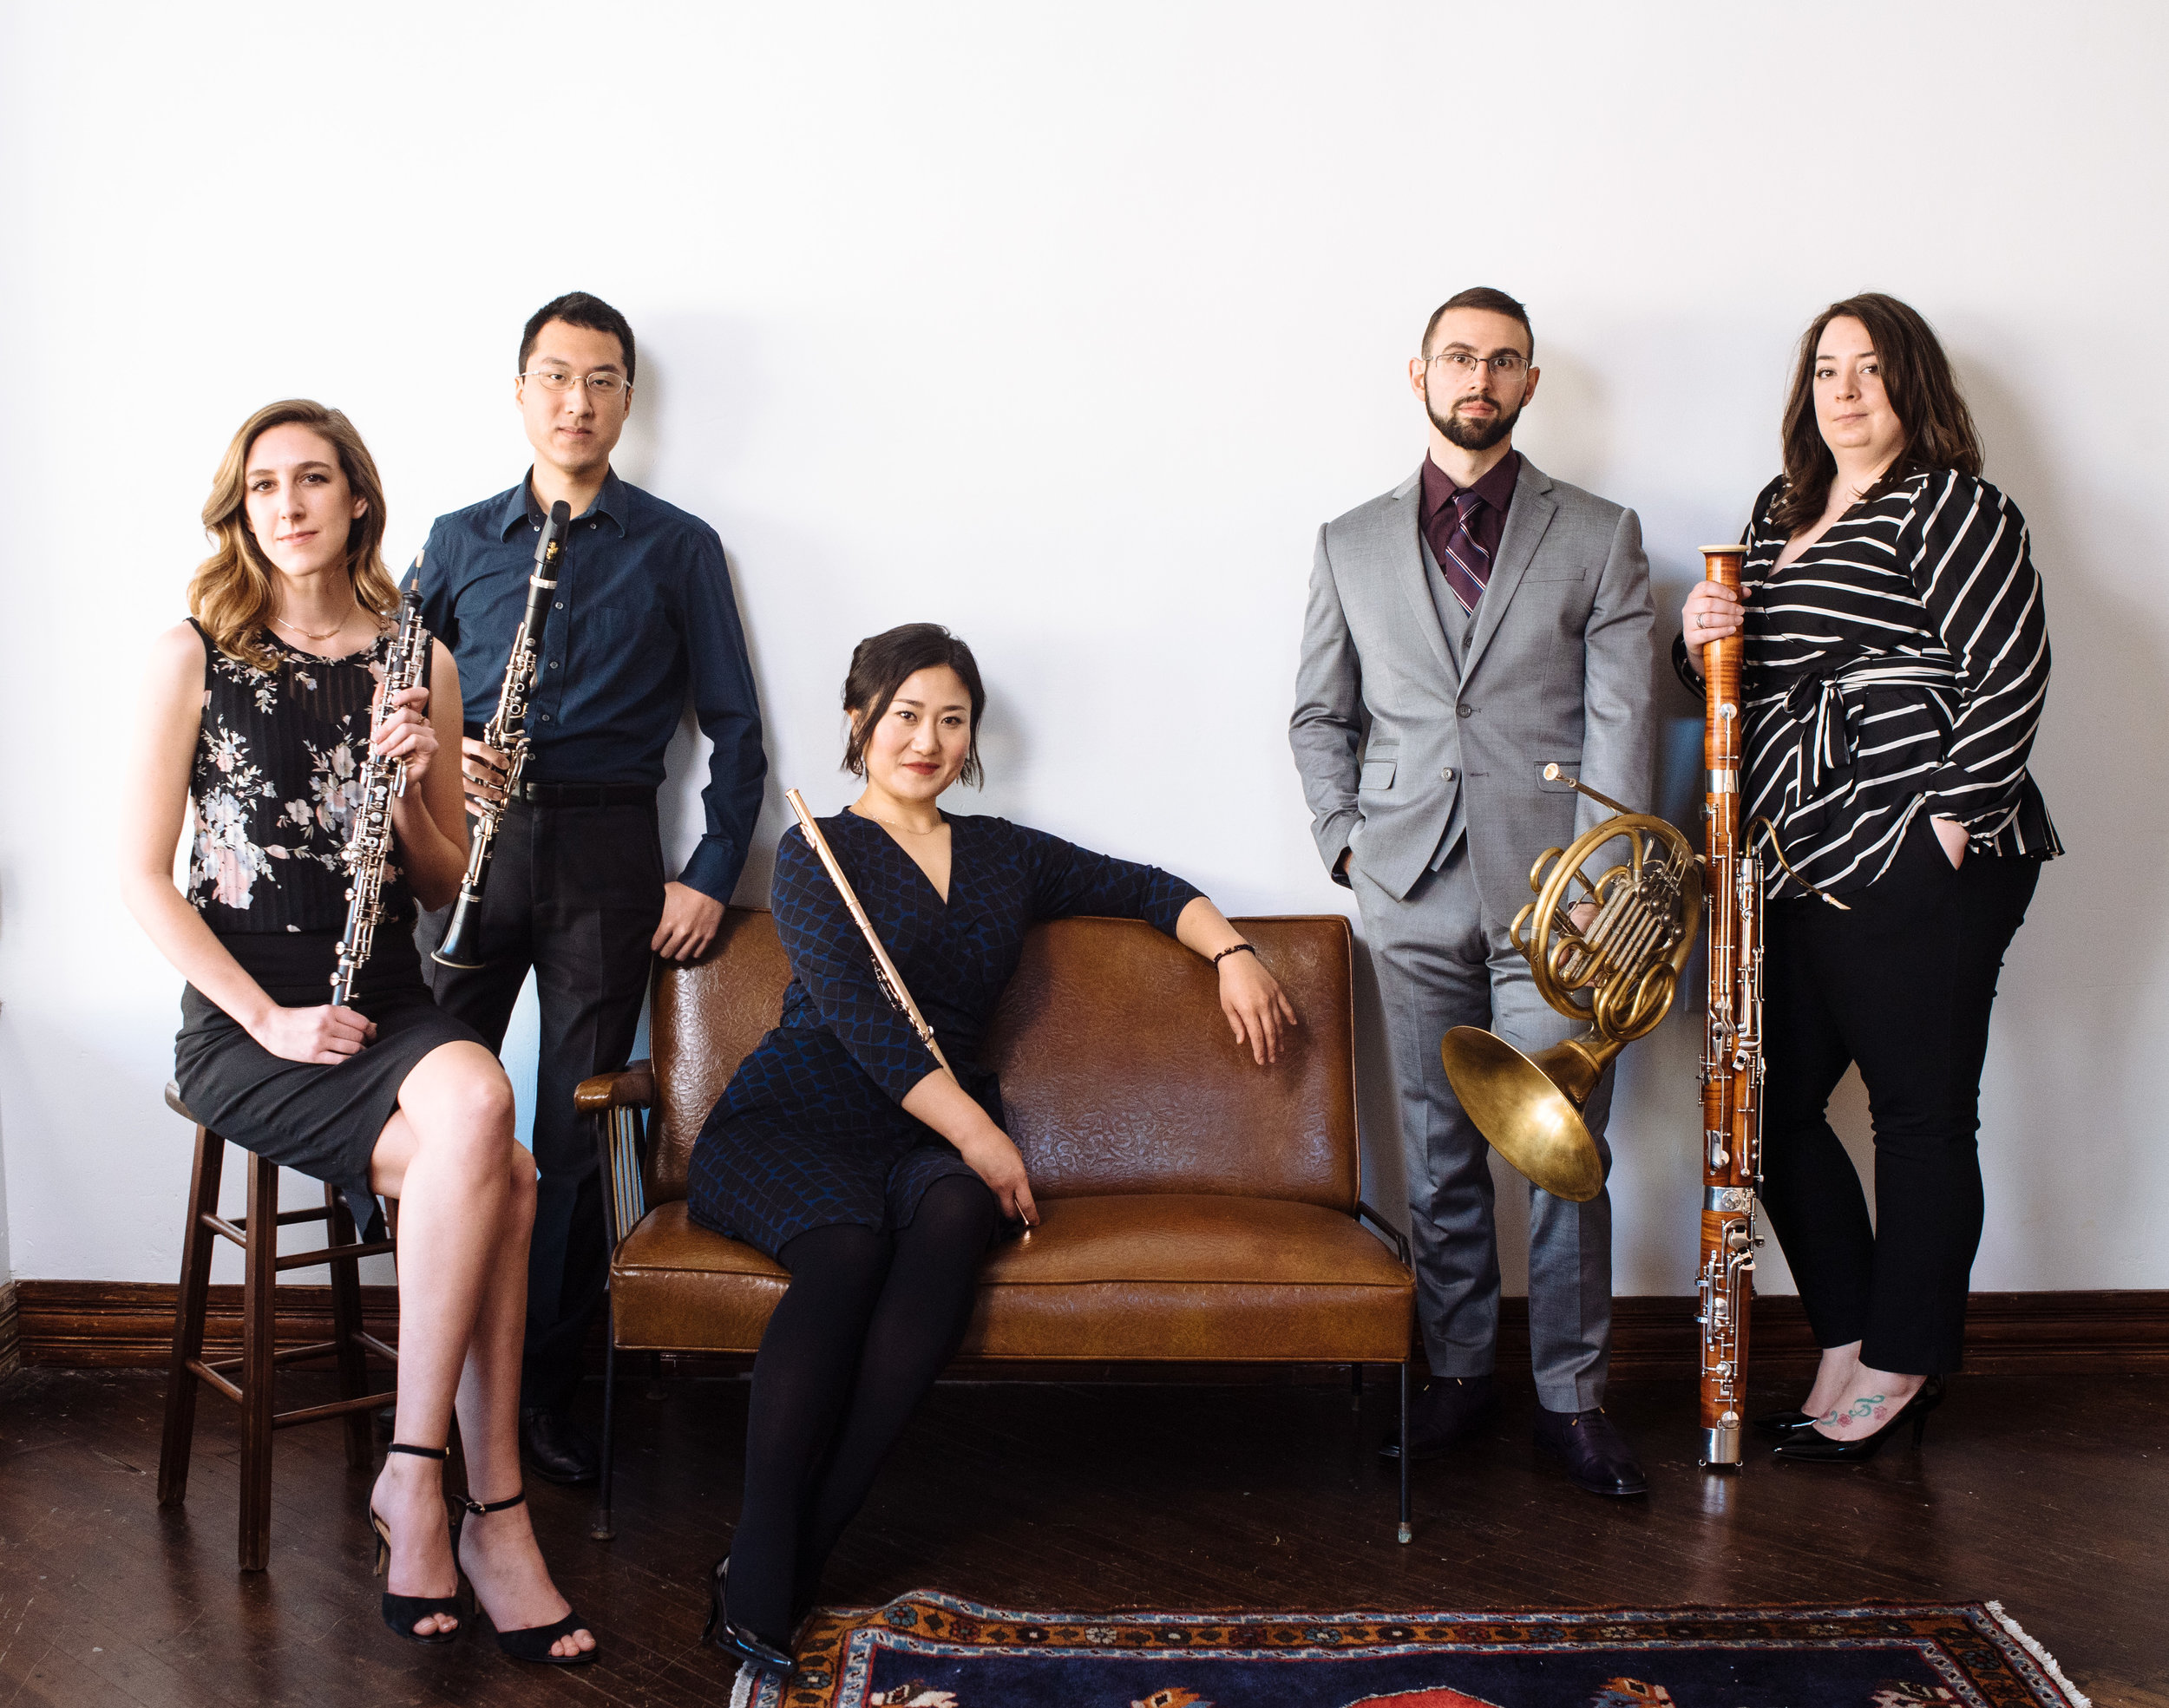 VOLANTEWINDS - Volante Winds seeks out creative collaborations in the pursuit of excellence in chamber music. Driven by a desire to share music with as wide an audience as possible, Volante Winds combines performance of the highest quality with a deep passion for pedagogy.